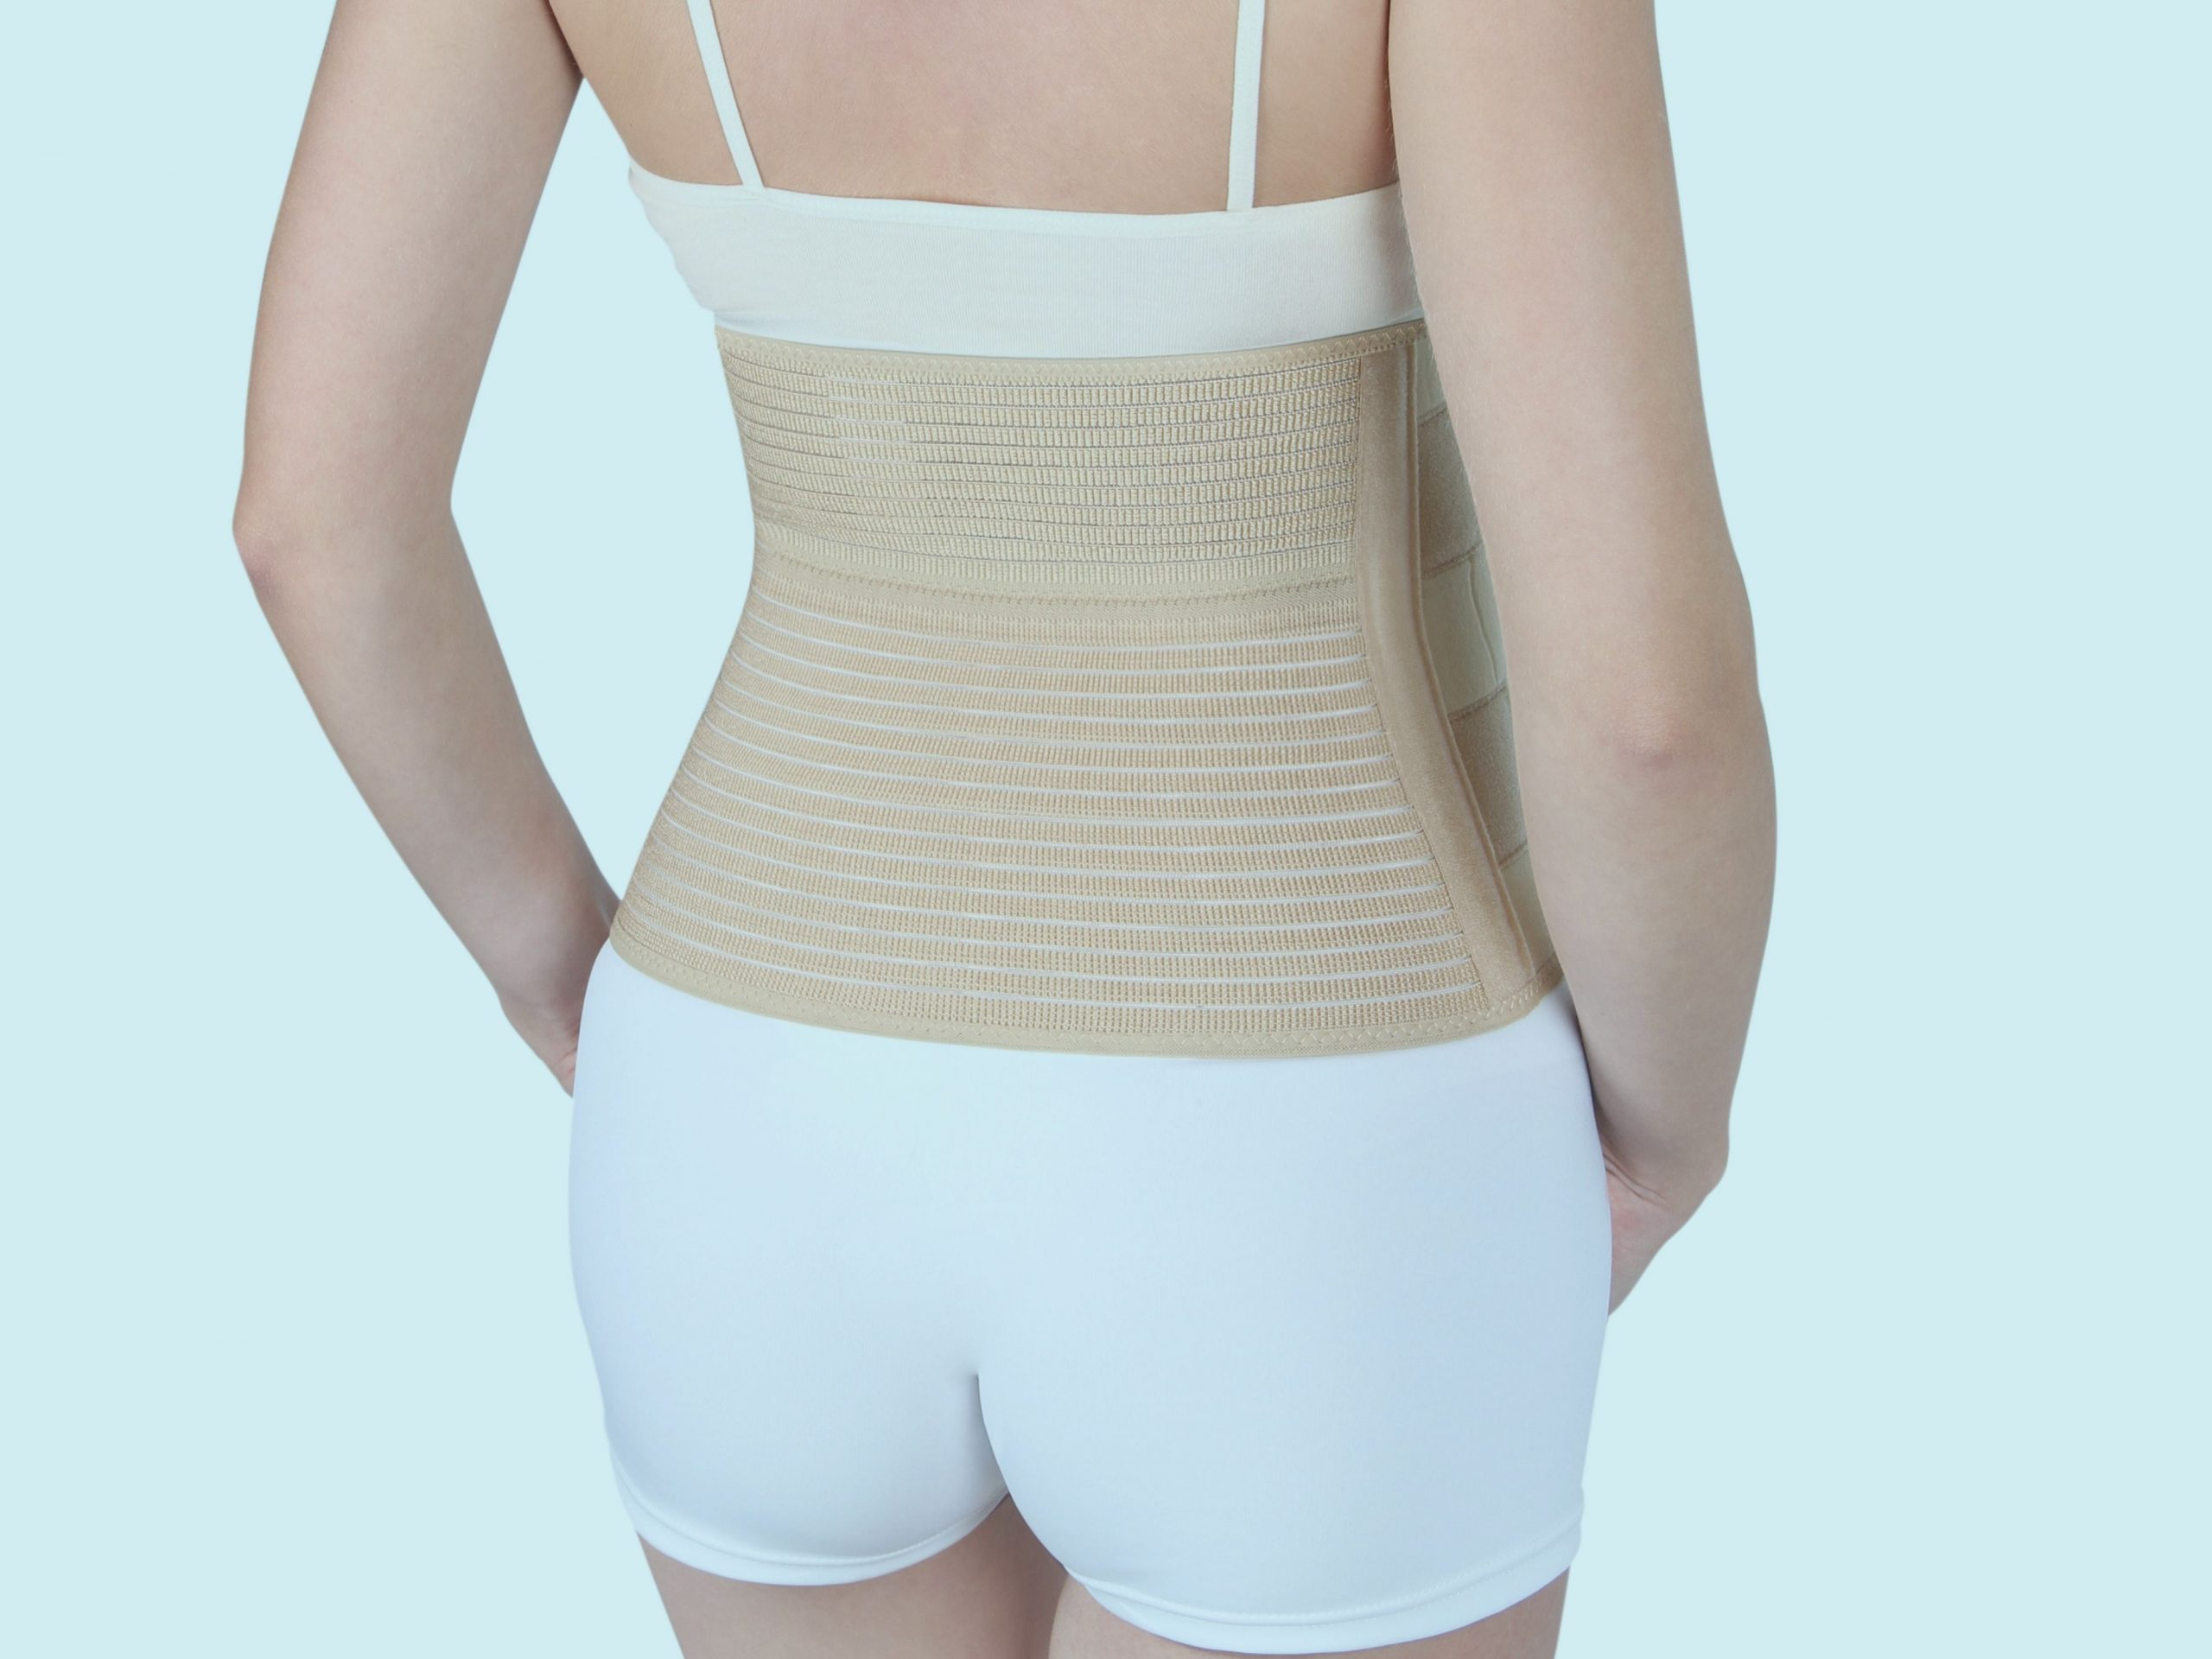 Importance of wearing a compression garment after surgery